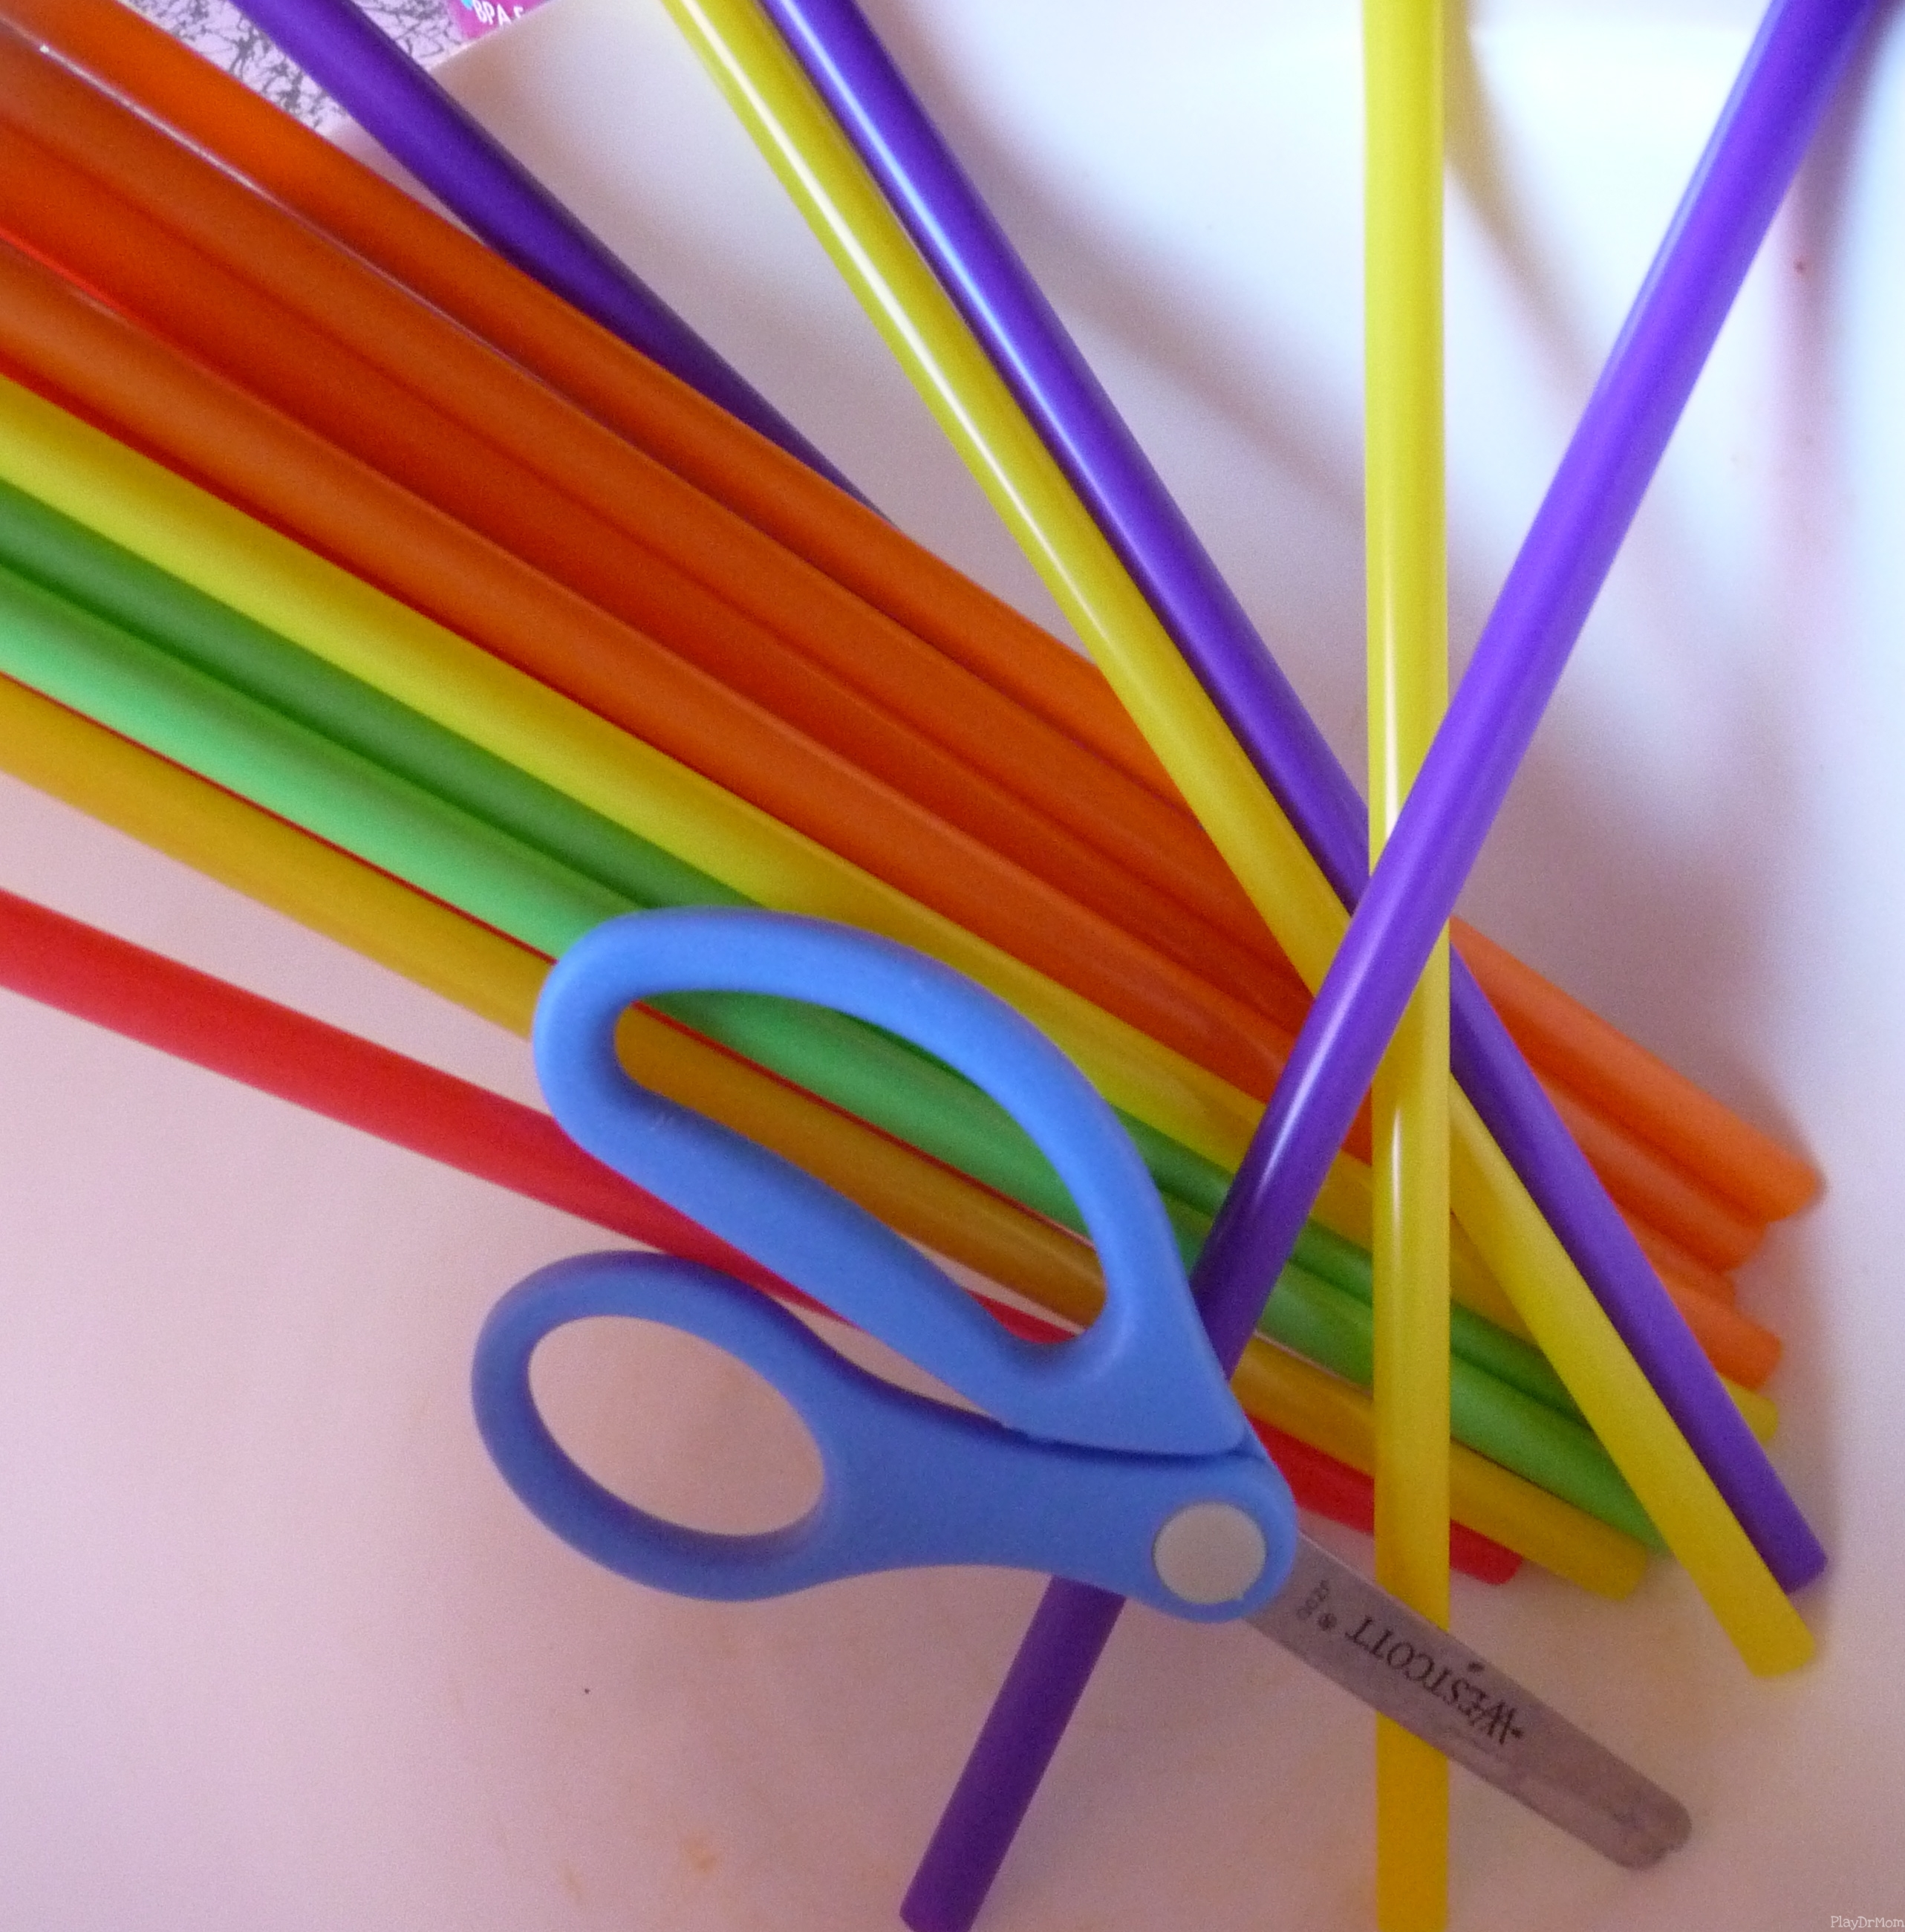 Supplies: Colored Straws and child scissors